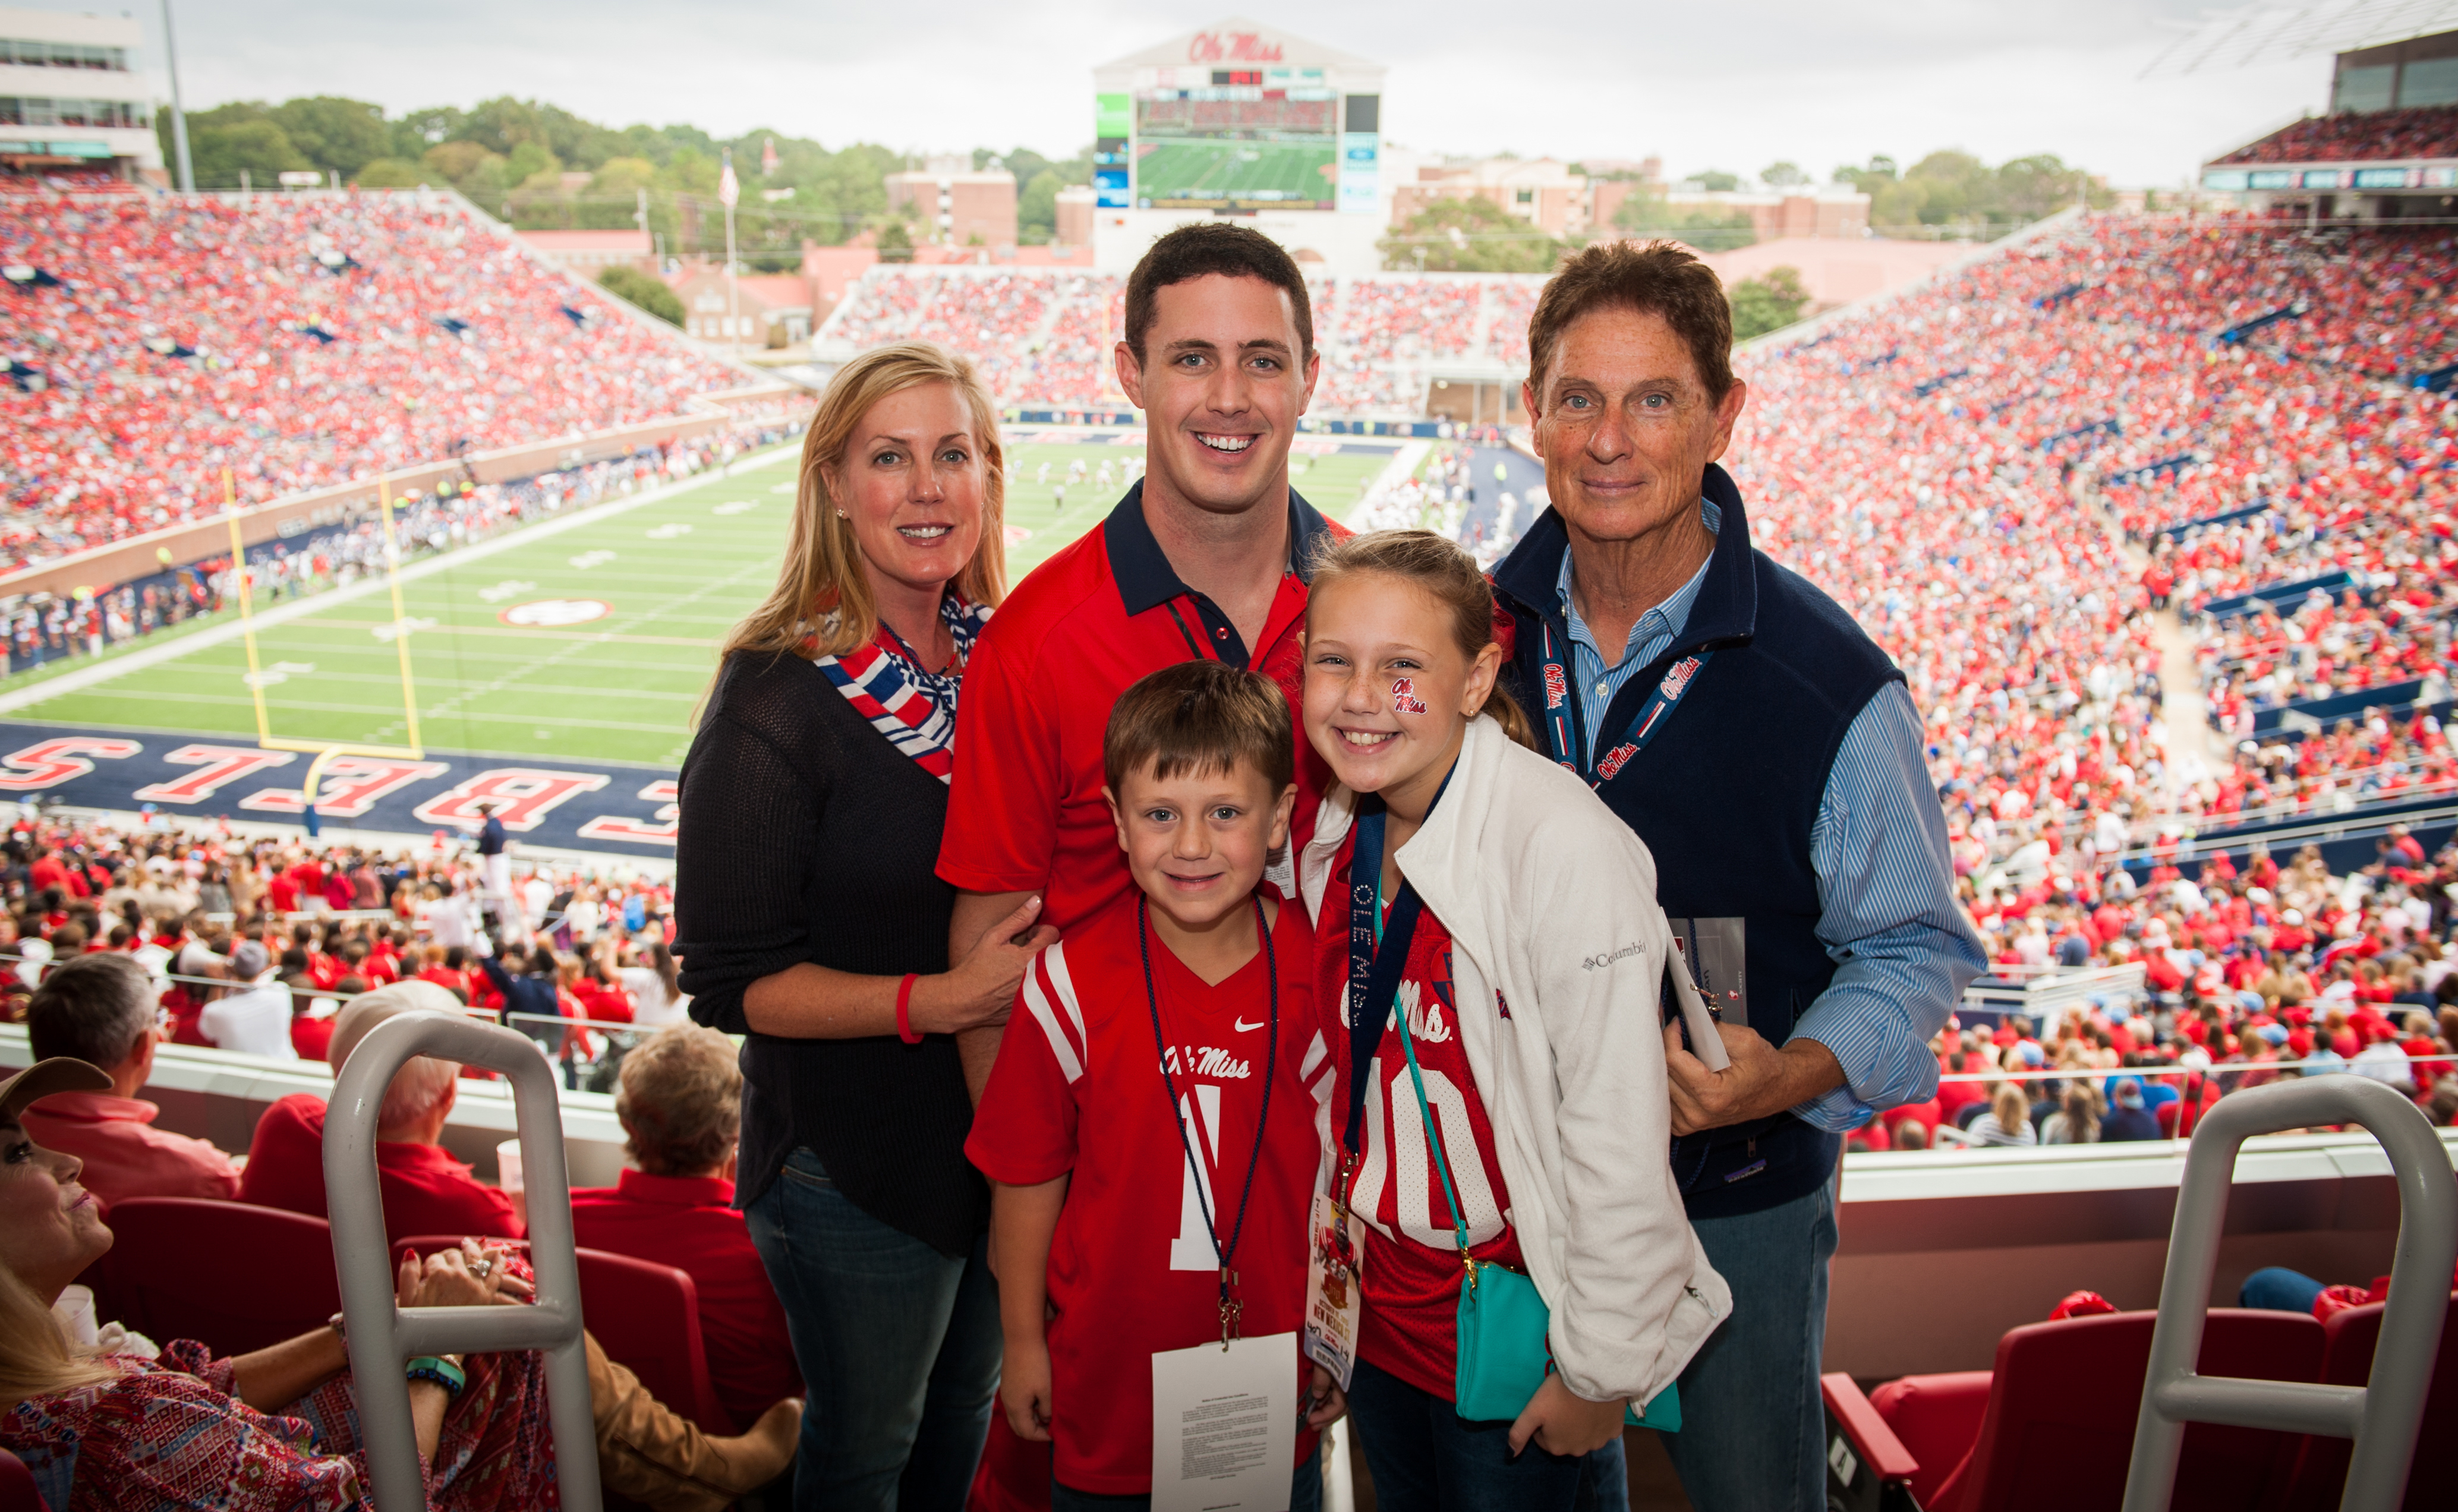 Ole miss gameday colors 2015 - Bill Jordan His Wife Shannon And Their Children Tyler A Senior